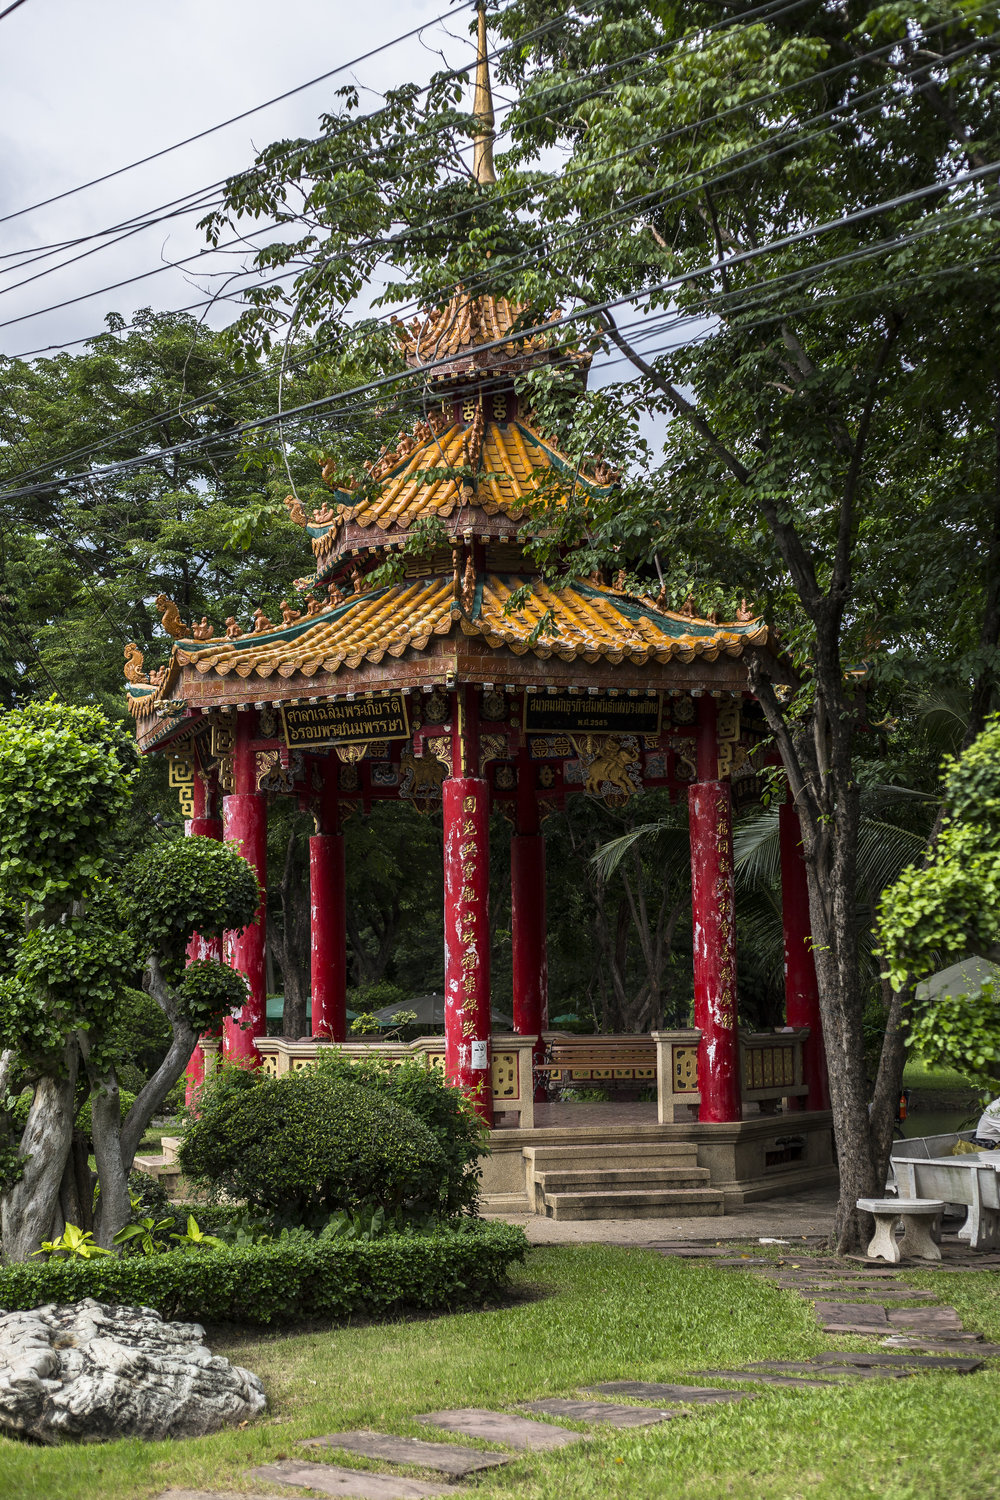 Picturesque gazebo in Lumphini Park.